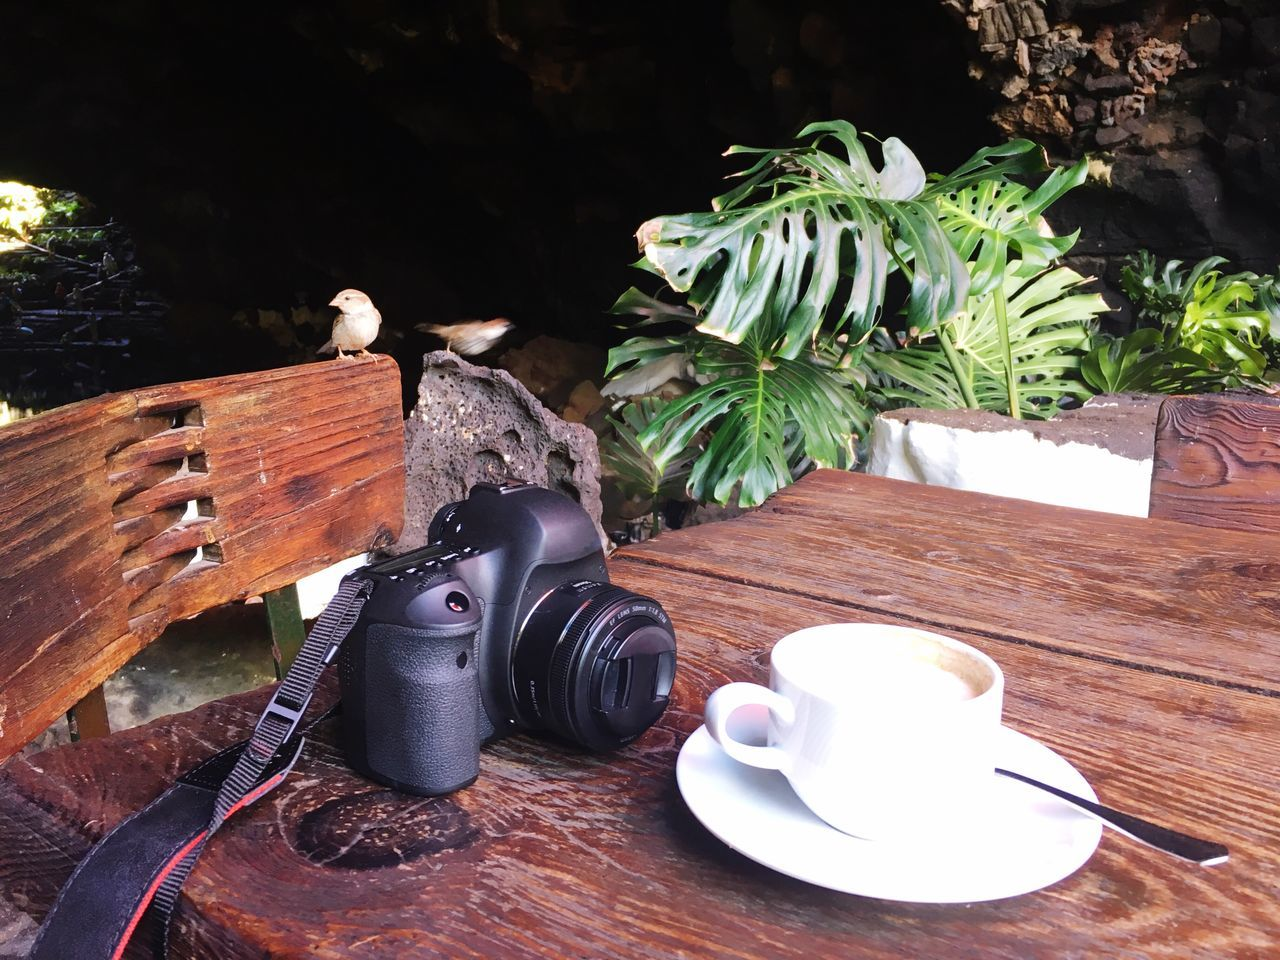 Morning coffee with camera and two sparrows Table Wood - Material No People Day Freshness Animal Themes Close-up Camera Dlsr Coffee Breakfast Sparrow Sparrows Creativity Art Remote Work Remote Working Relaxation Independance Outside Coffee Shop Nature Birds